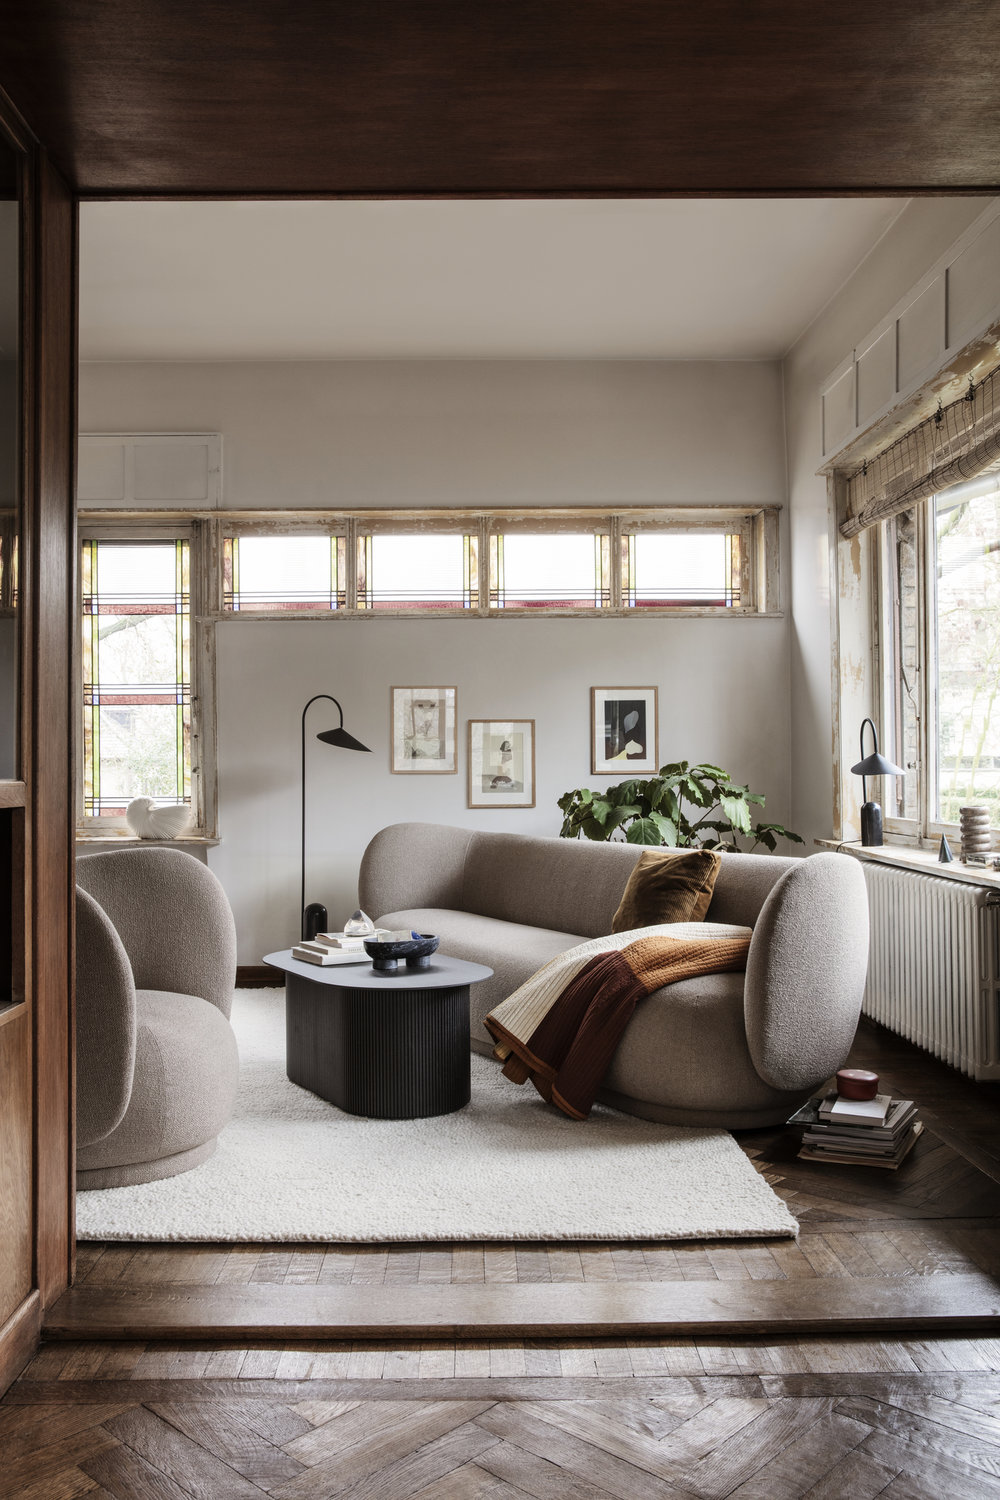 Rico Sofa from Ferm Living